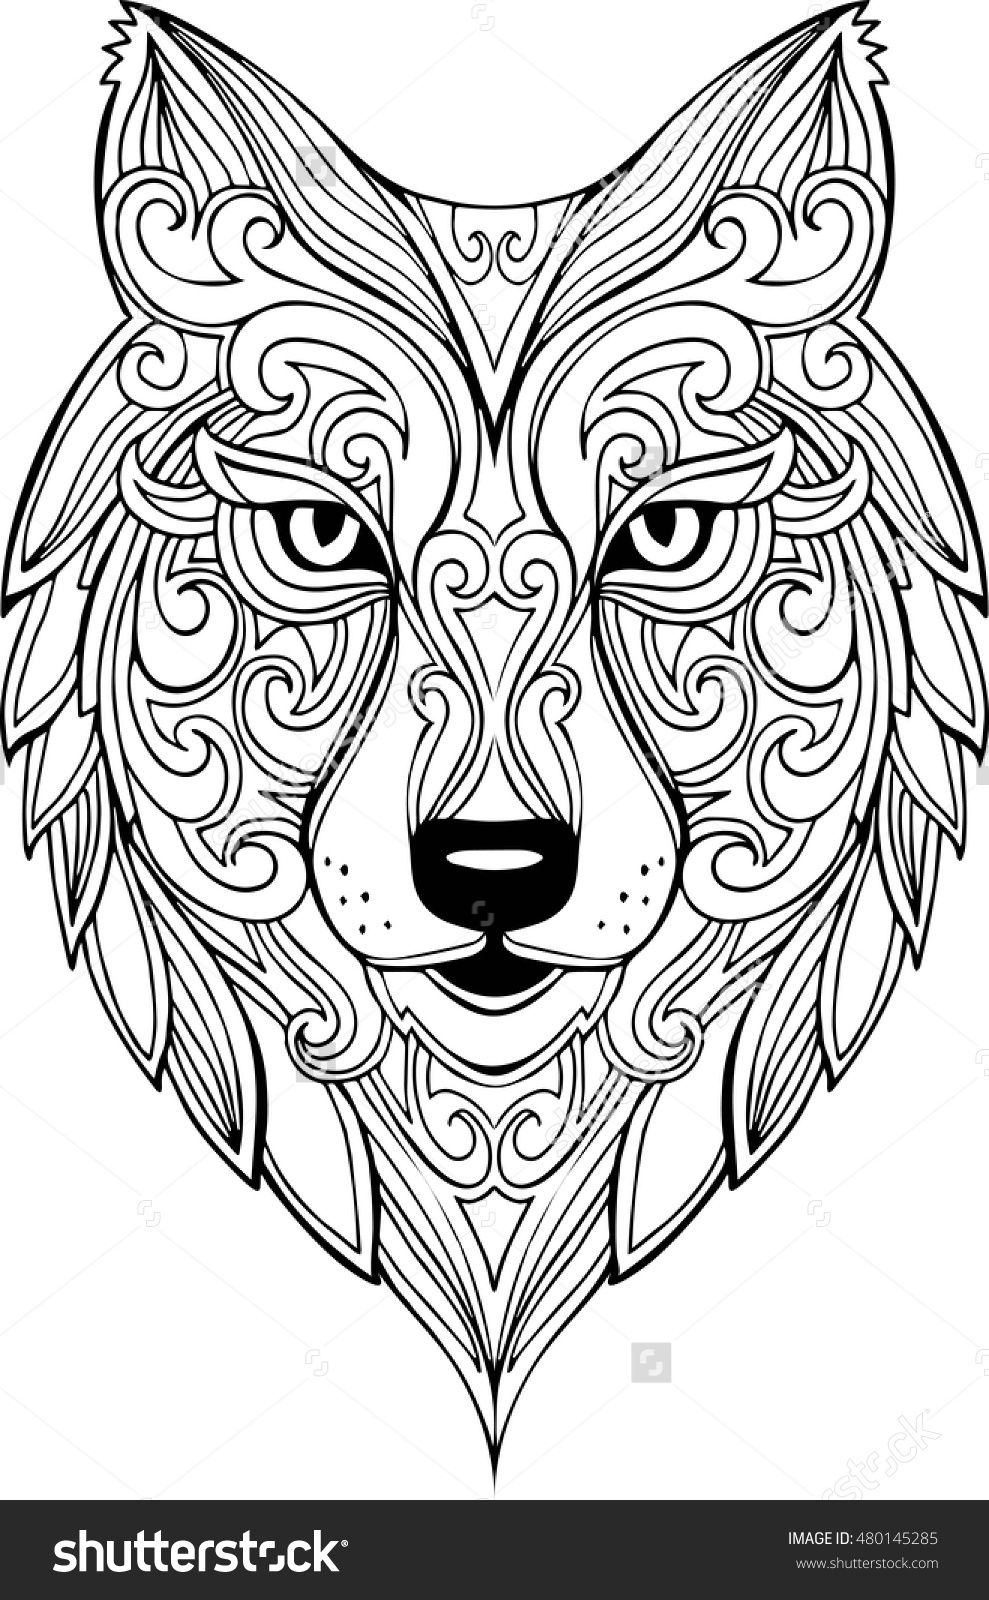 Wolf mandala coloring pages - Vector Hand Drawn Doodle Wolf Head Illustration Zentangle Decorative Wolf Head Drawing For Coloring Book